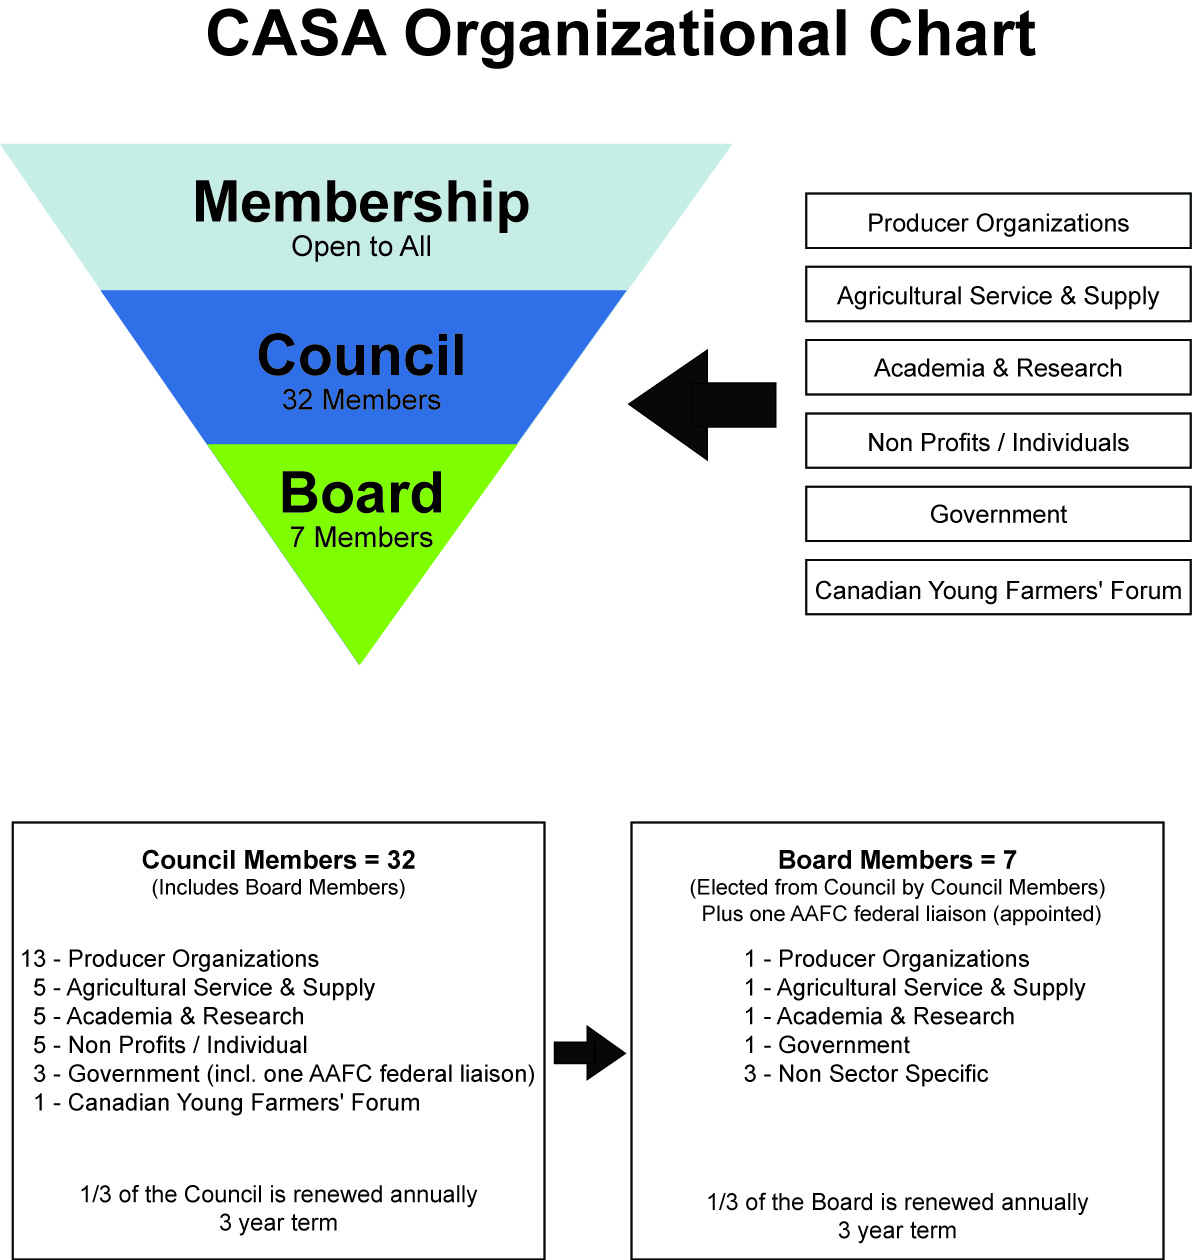 Organizational Chart For Word: CASA Organizational Chart.jpg - Wikimedia Commons,Chart